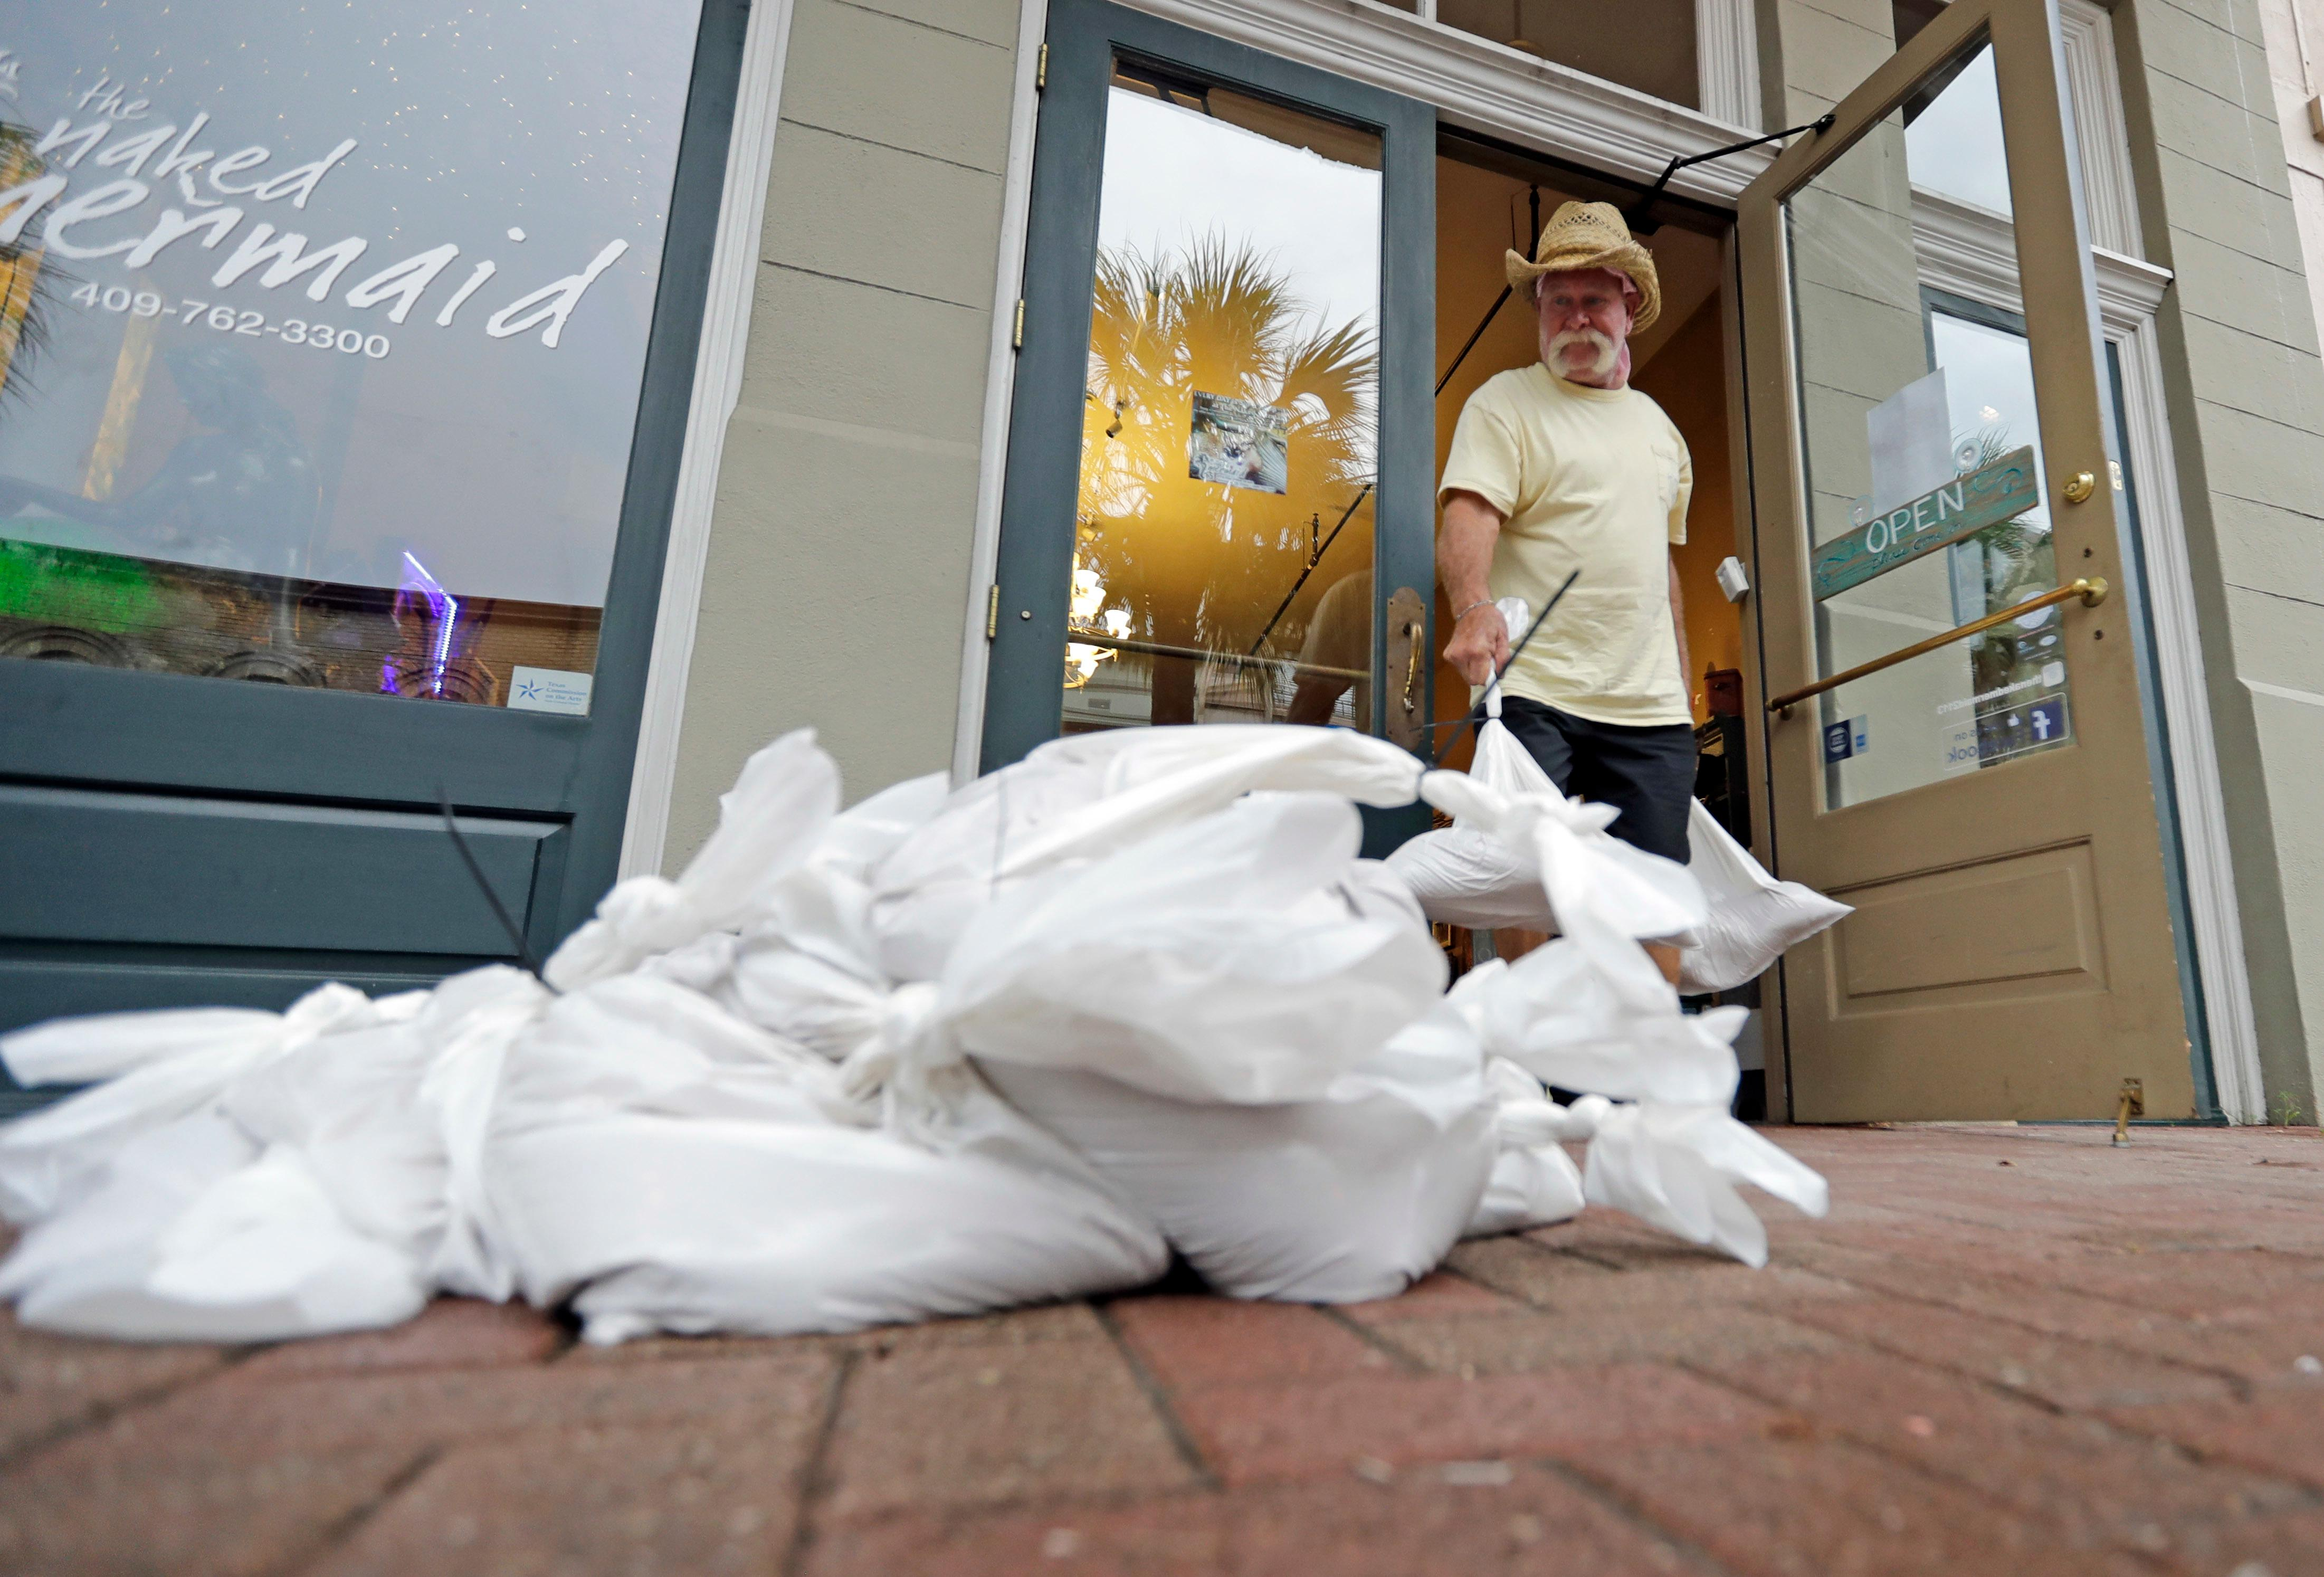 "Lynn Dixon places sandbags outside their home decor store in Galveston, Texas as Hurricane Harvey intensifies in the Gulf of Mexico Friday, Aug. 25, 2017. Conditions were deteriorating along Texas's Gulf Coast on Friday as Hurricane Harvey strengthened and slowly moved toward the state, with forecasters warning that evacuations and preparations ""should be rushed to completion.""  (AP Photo/David J. Phillip)"